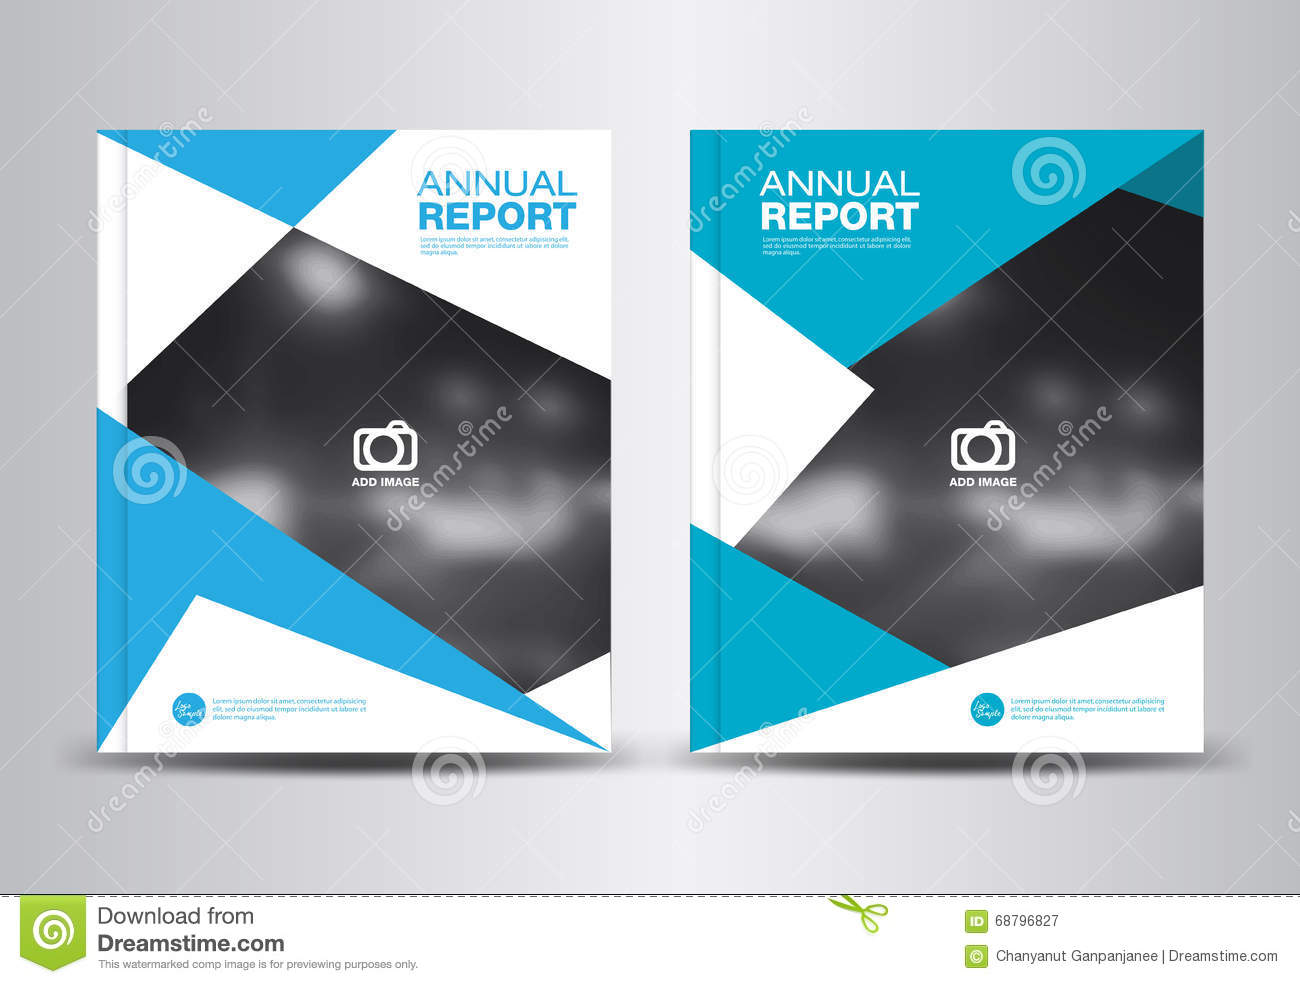 annual report templates free download – Free Annual Report Templates